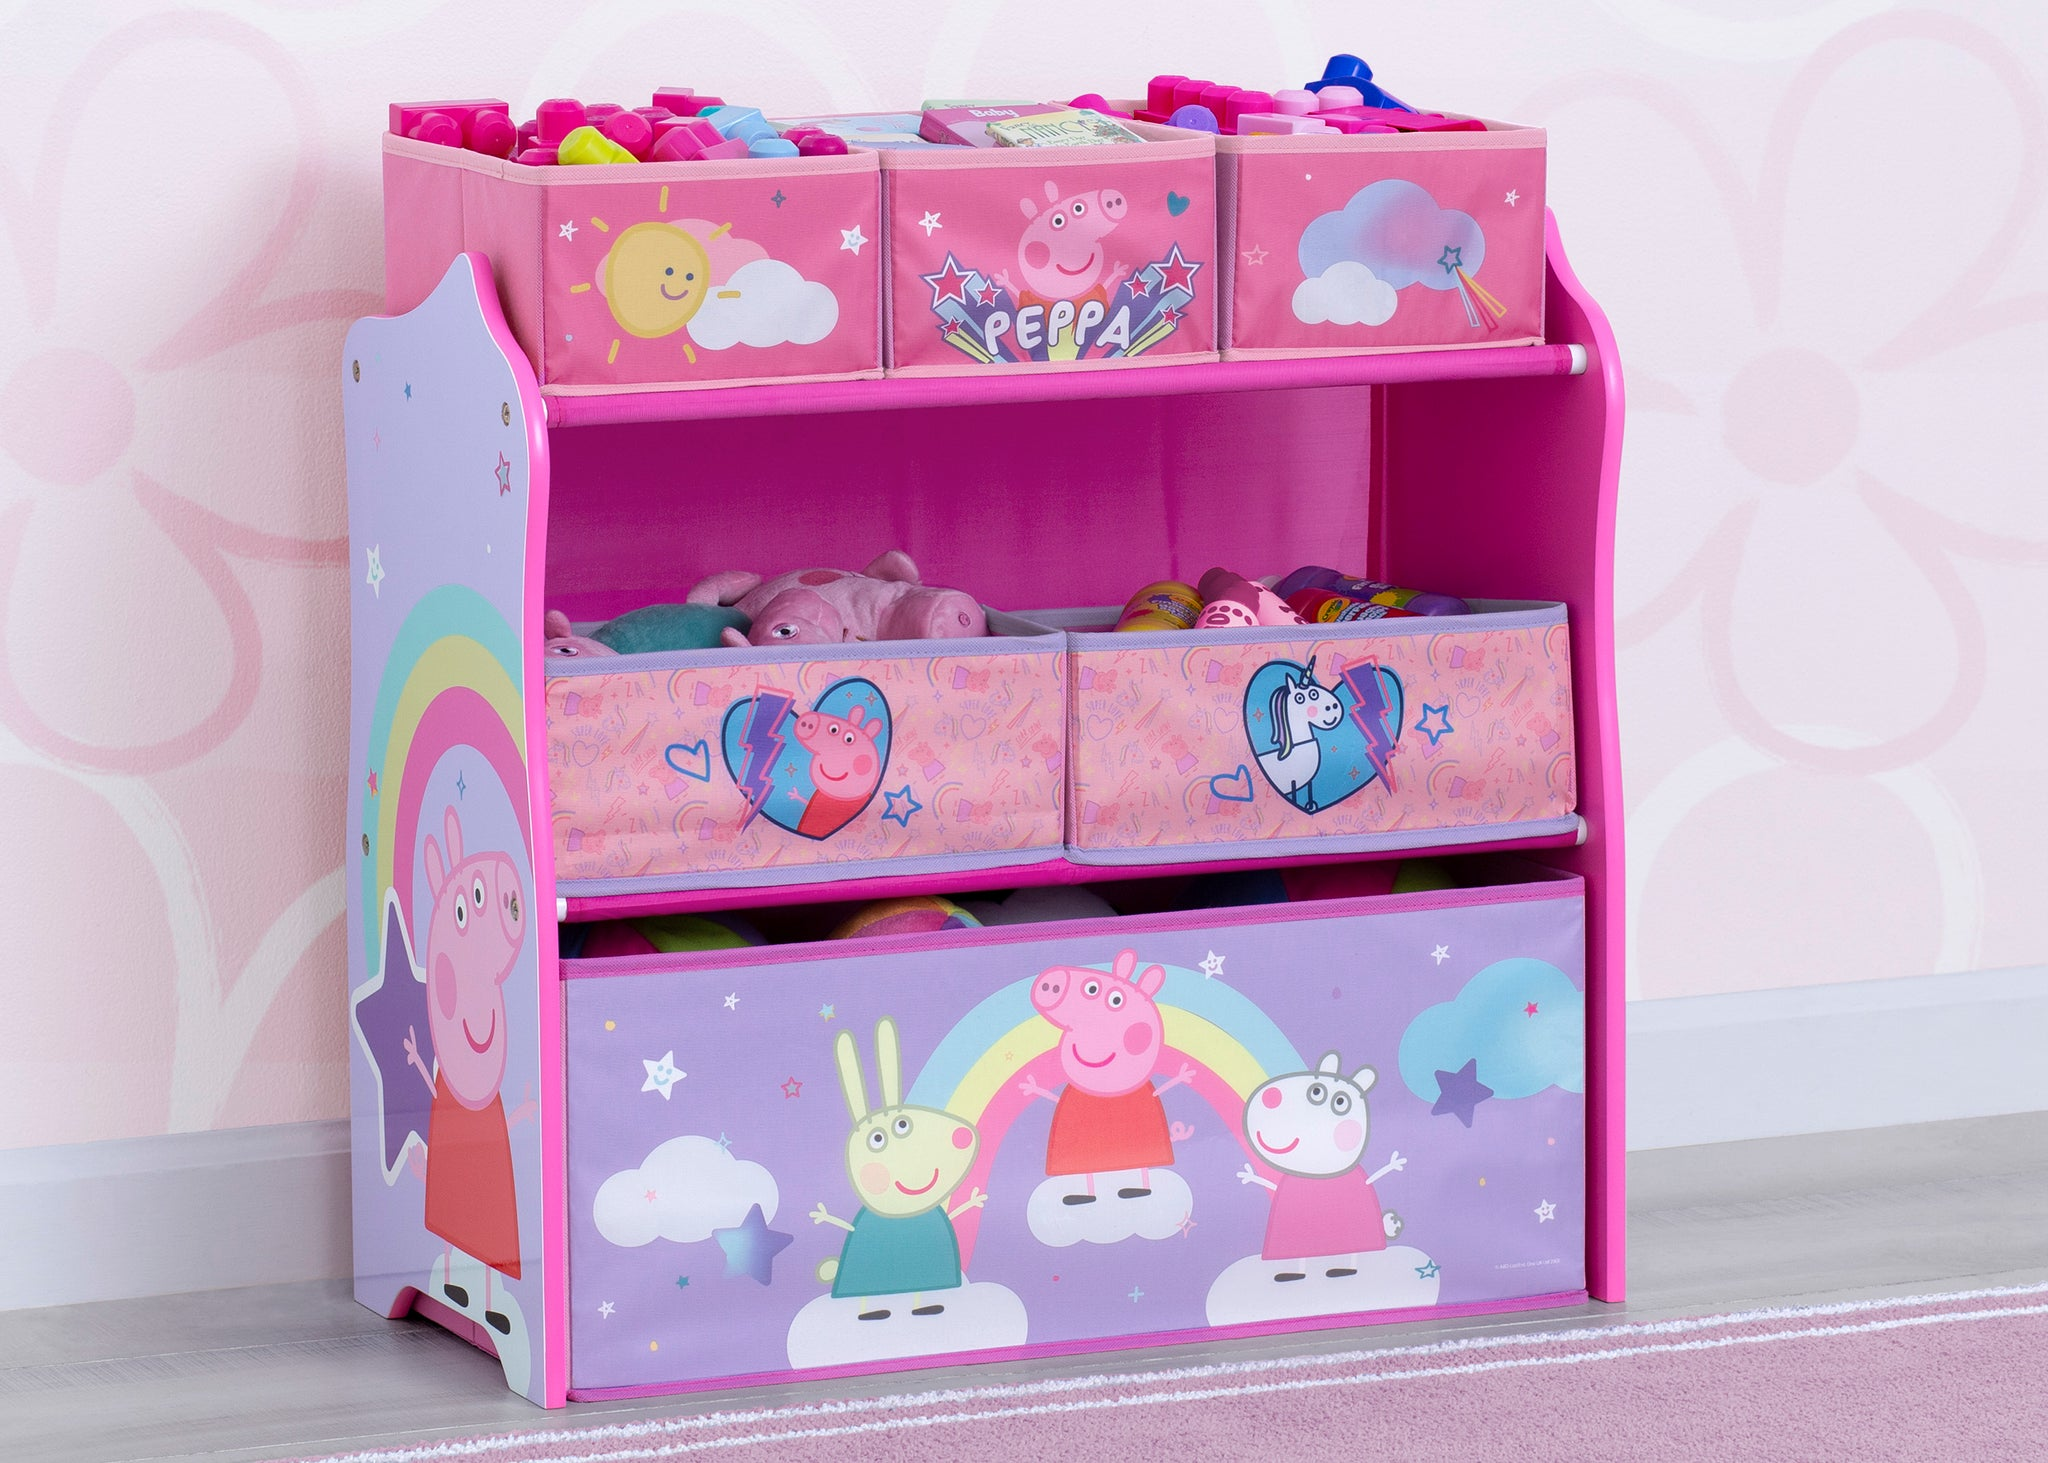 Peppa Pig 6 Bin Design and Store Toy Organizer